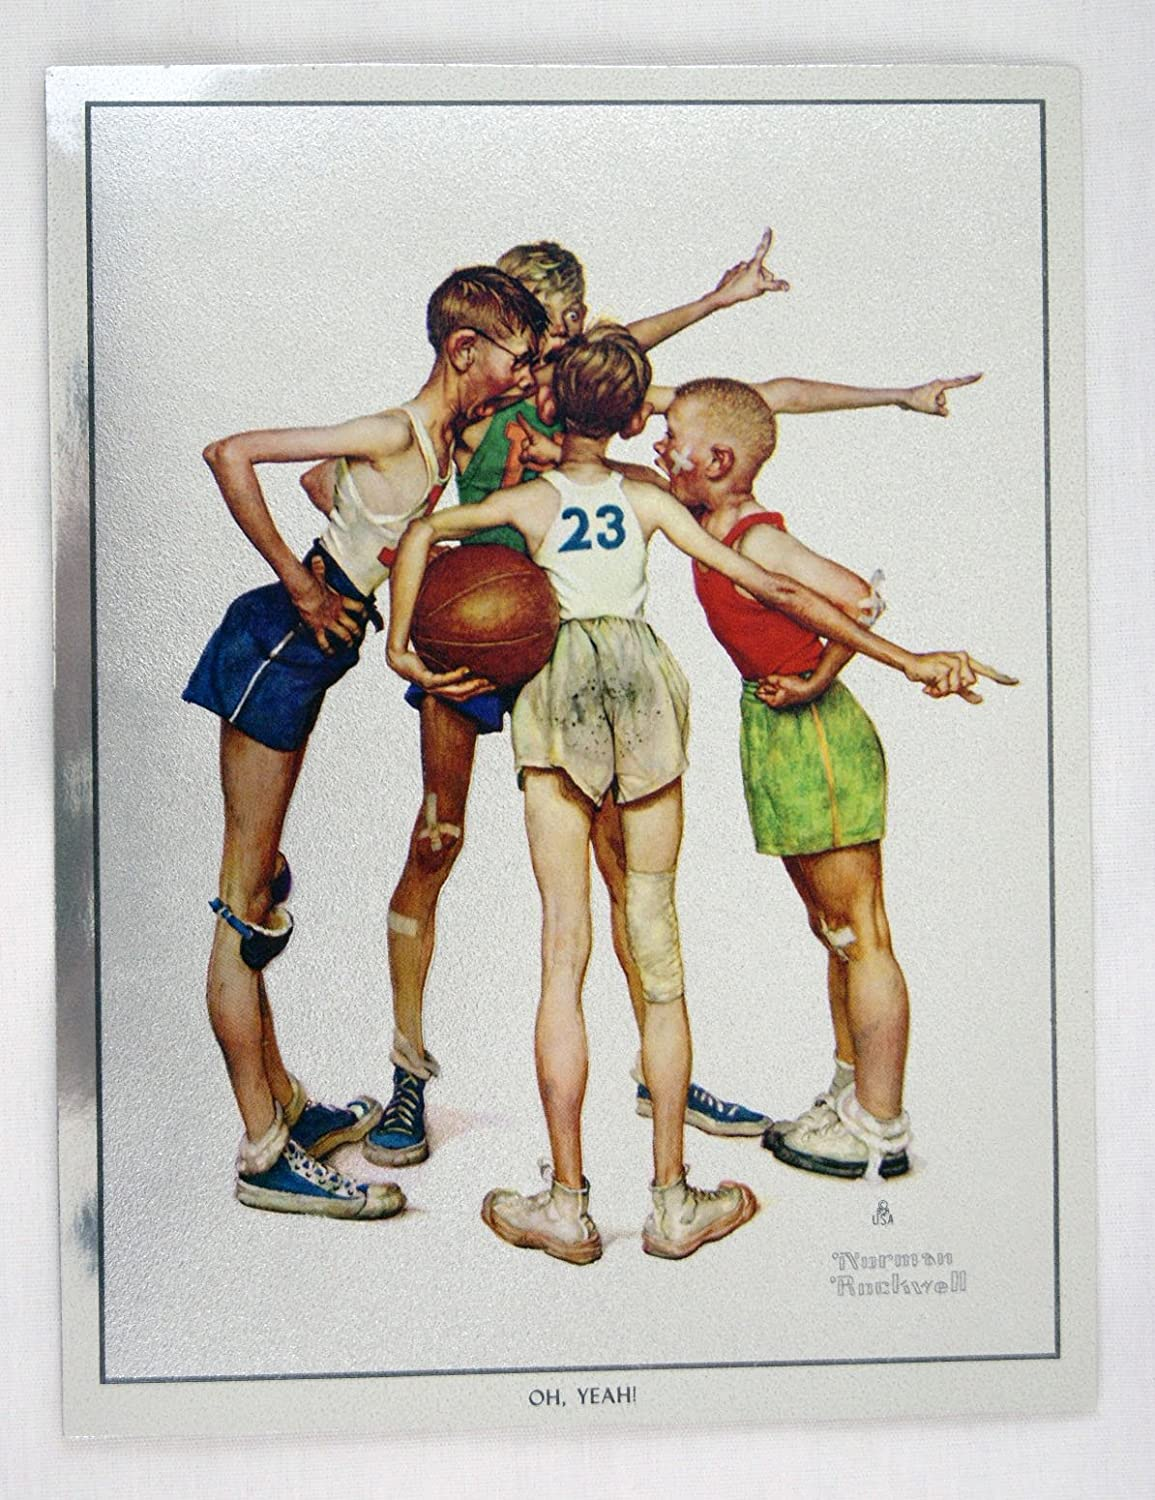 Vintage Norman Rockwell Oh Yeah Sporting Boys Basketball Foil Etch Print